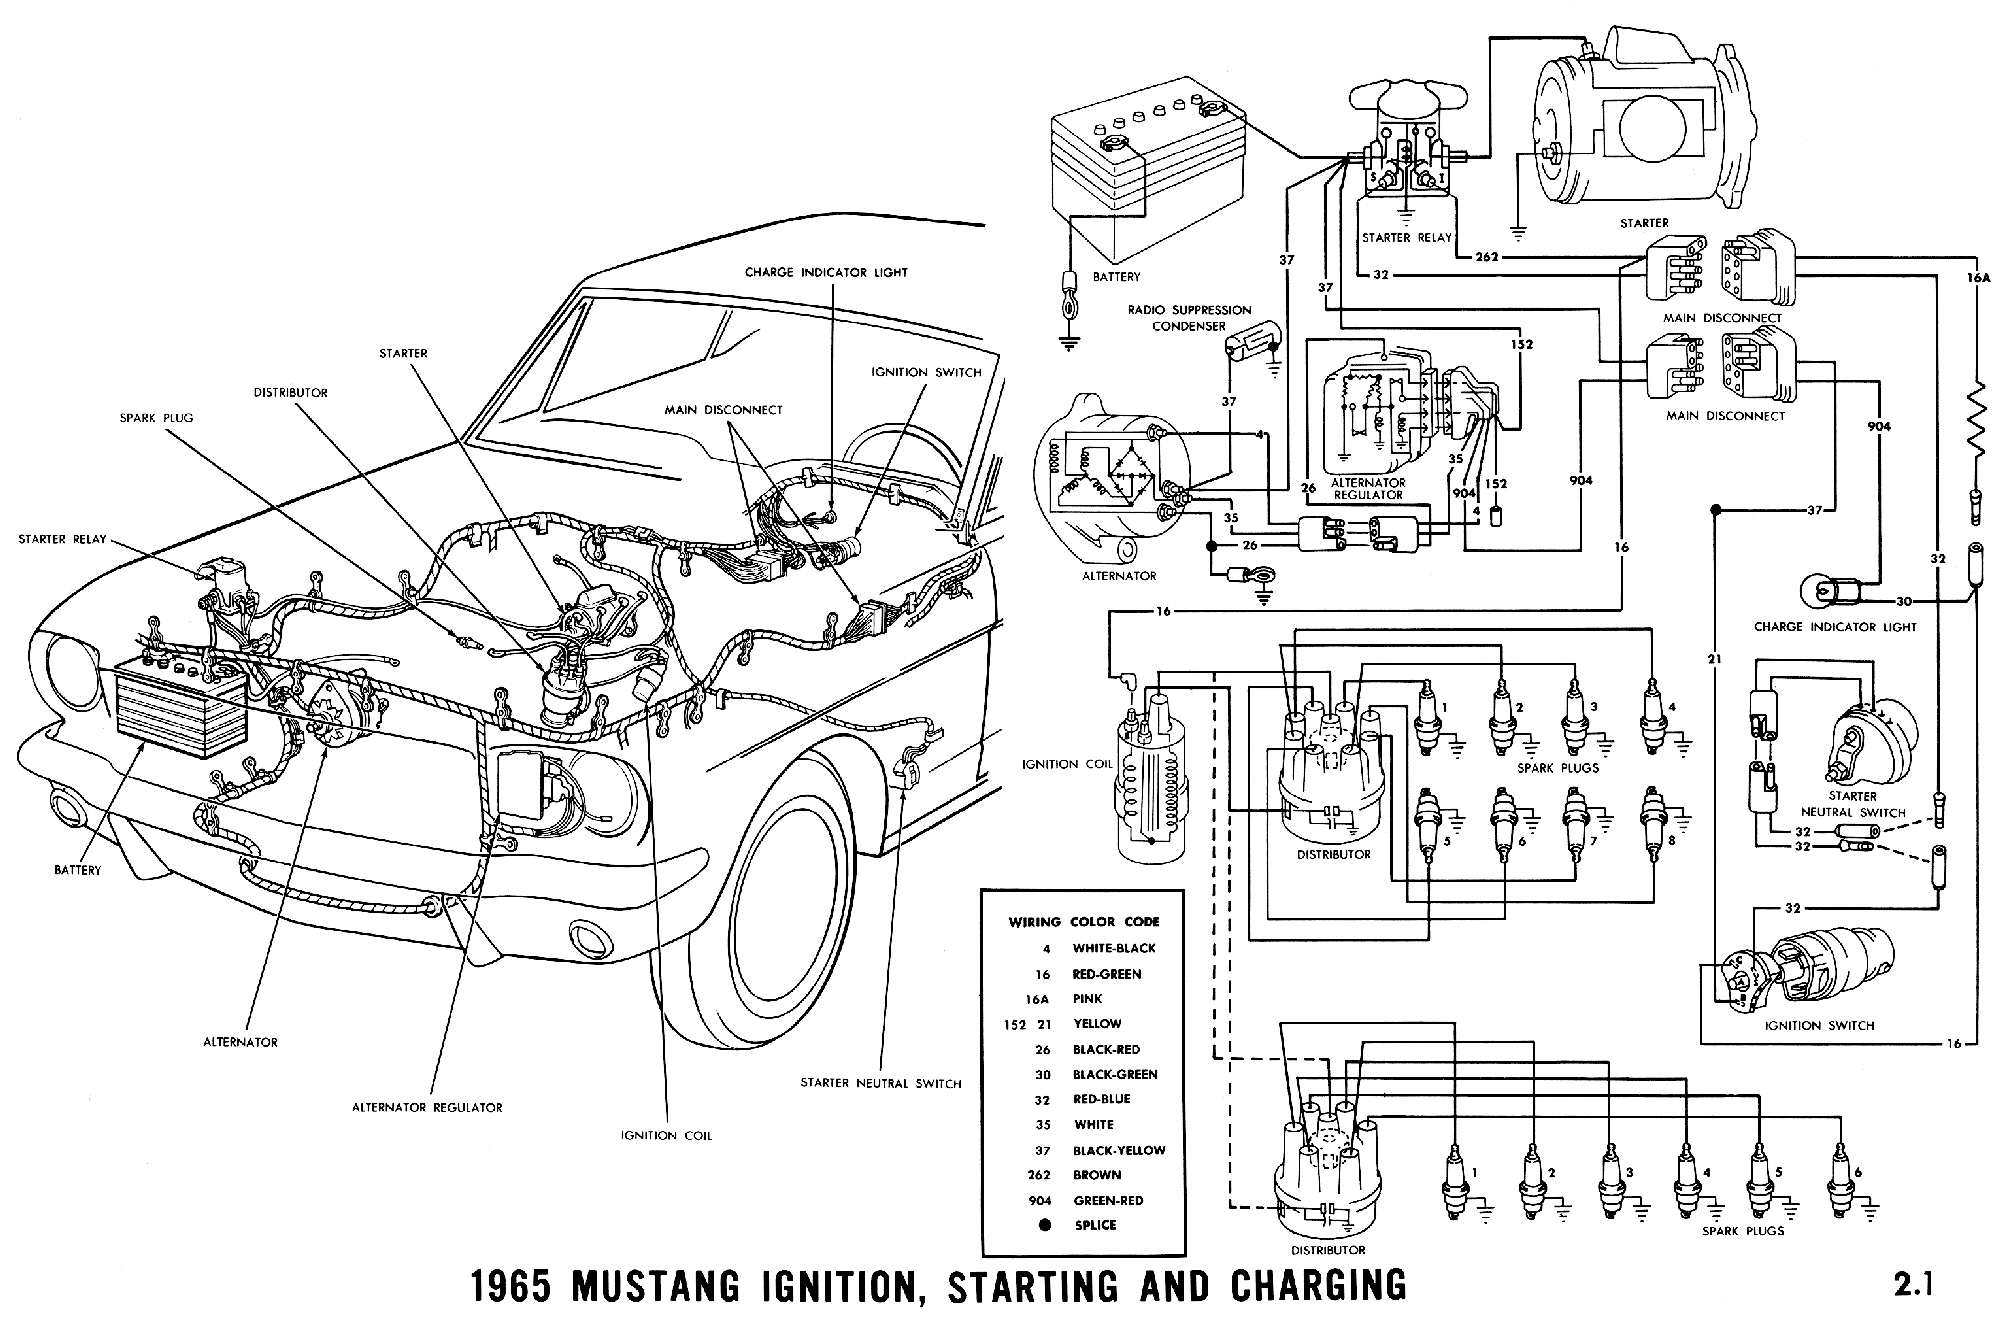 hight resolution of 1965 mustang wiring diagrams average joe restoration ford mustang air conditioning diagram ford mustang wiring diagram